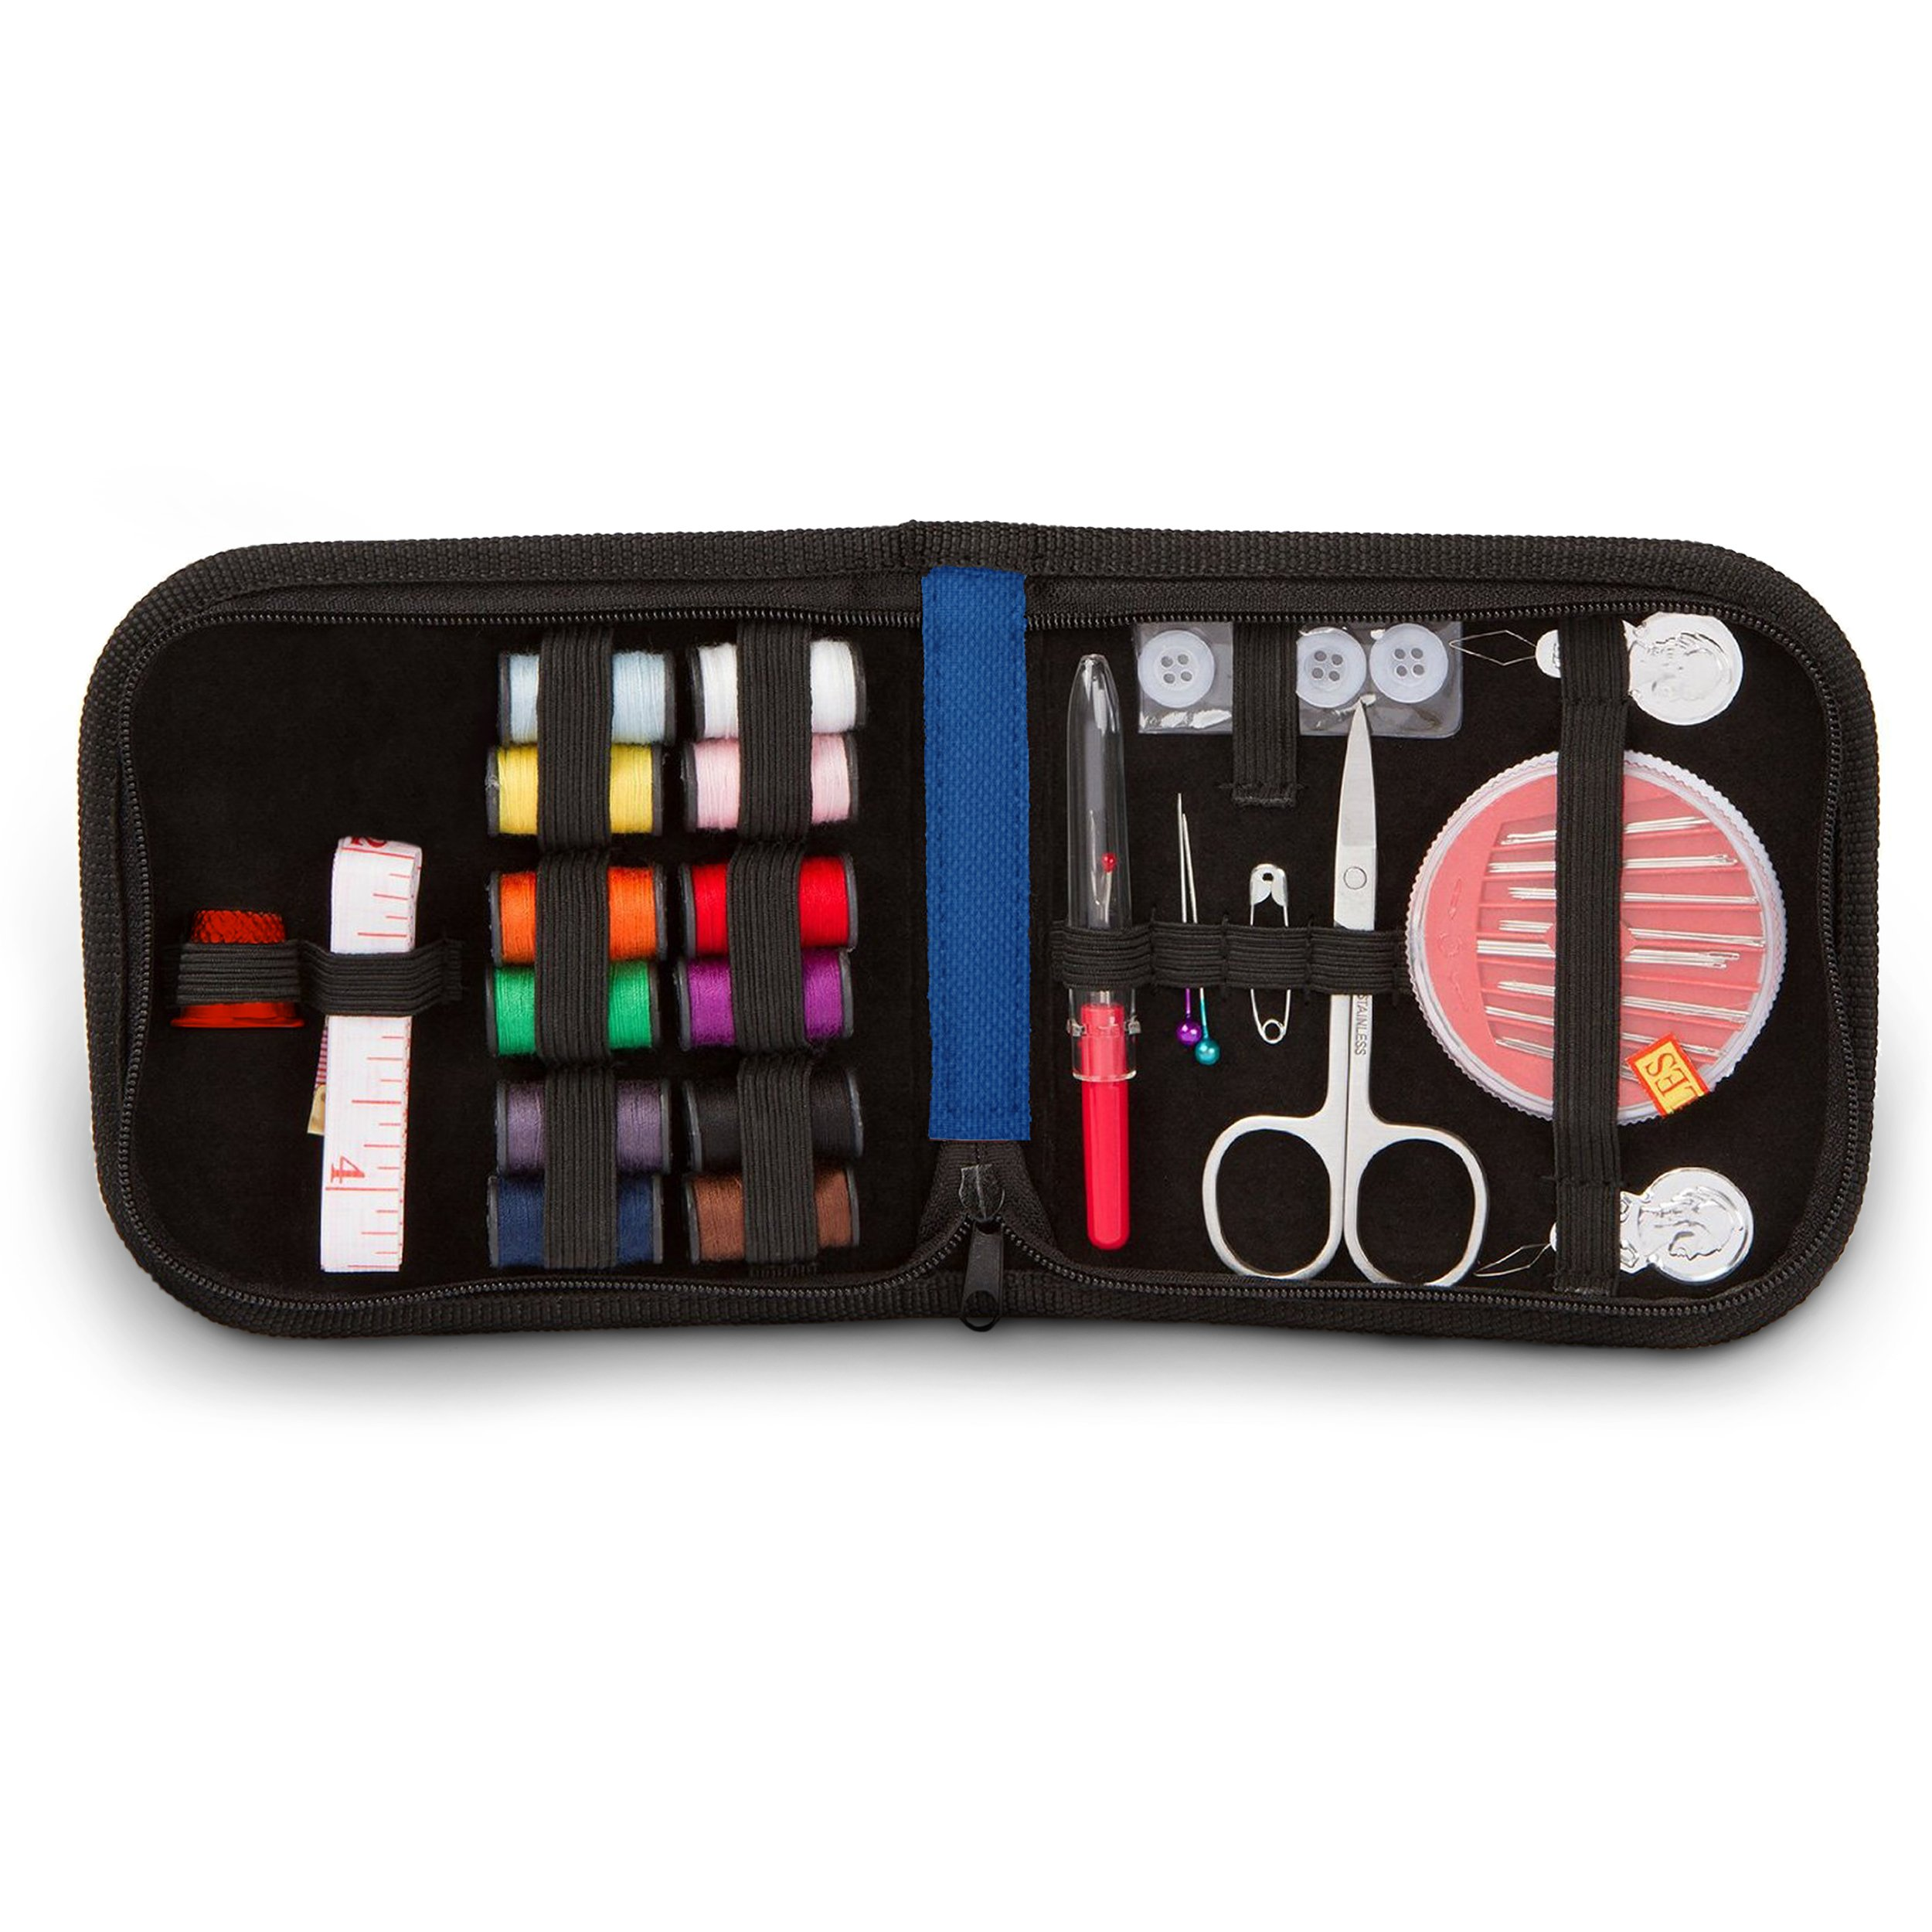 Stitch mend mini sewing kit for travel 10 essential for Kit boite a couture